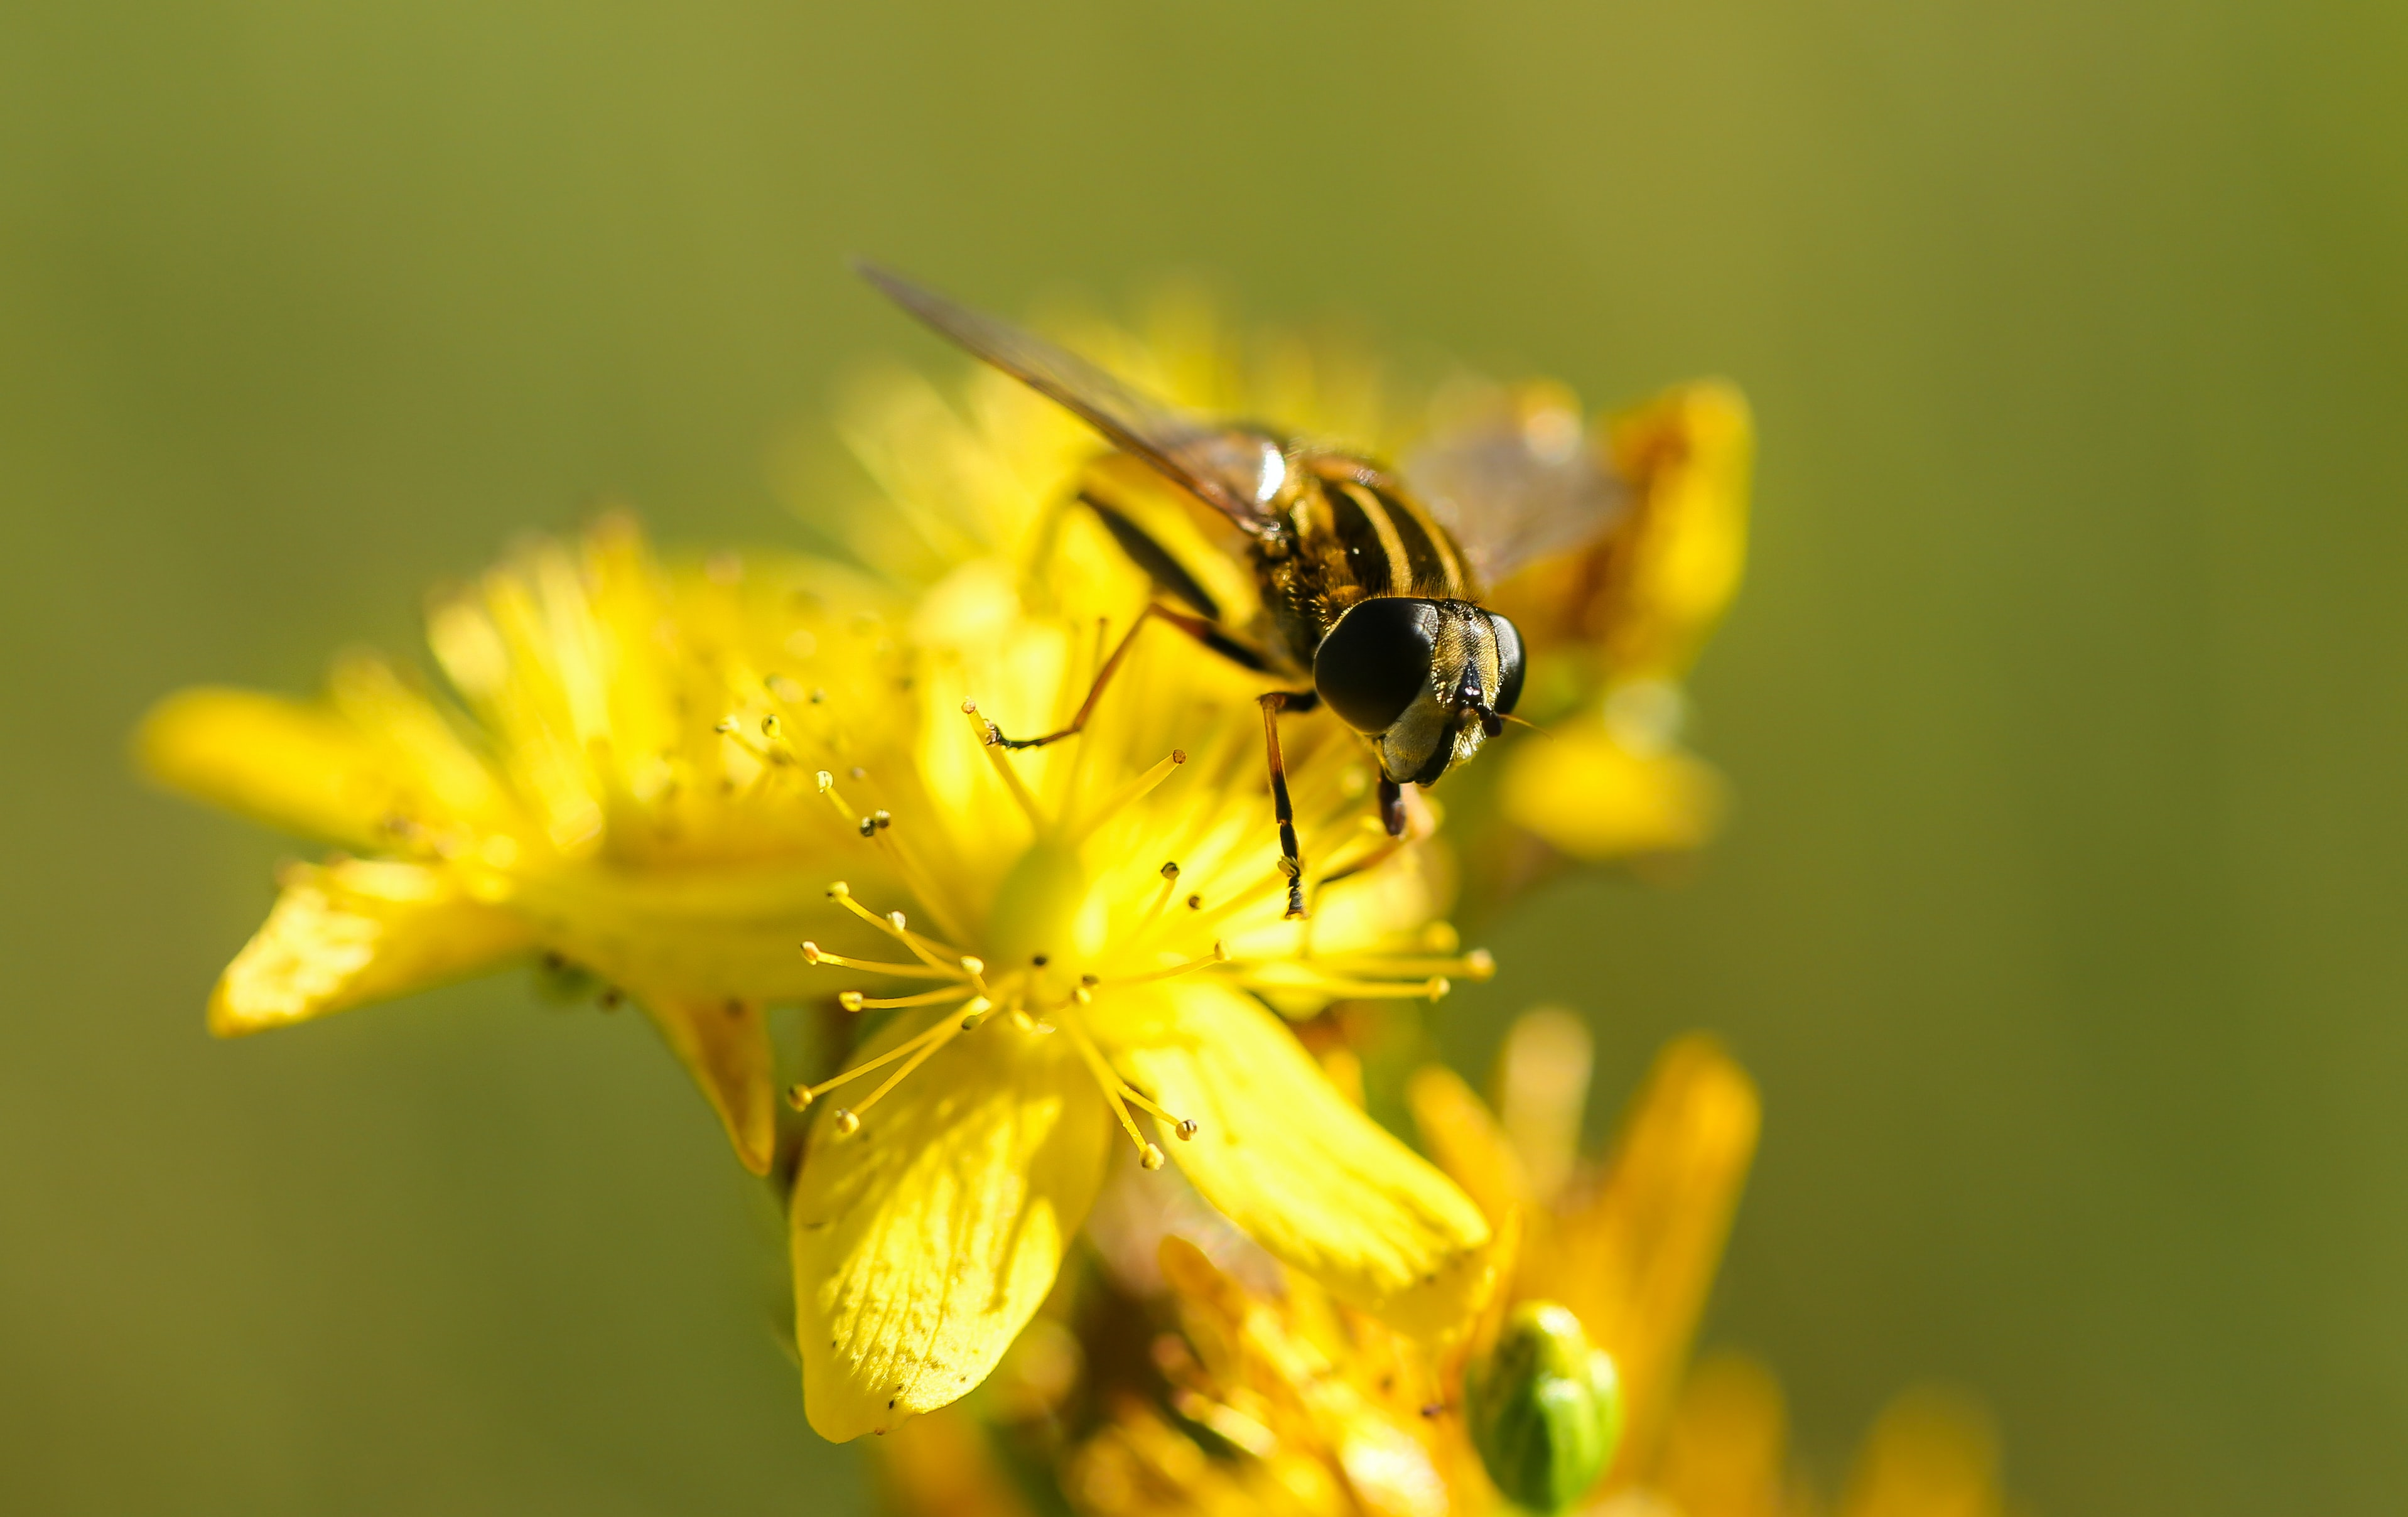 Bug perched on a yellow wildflower